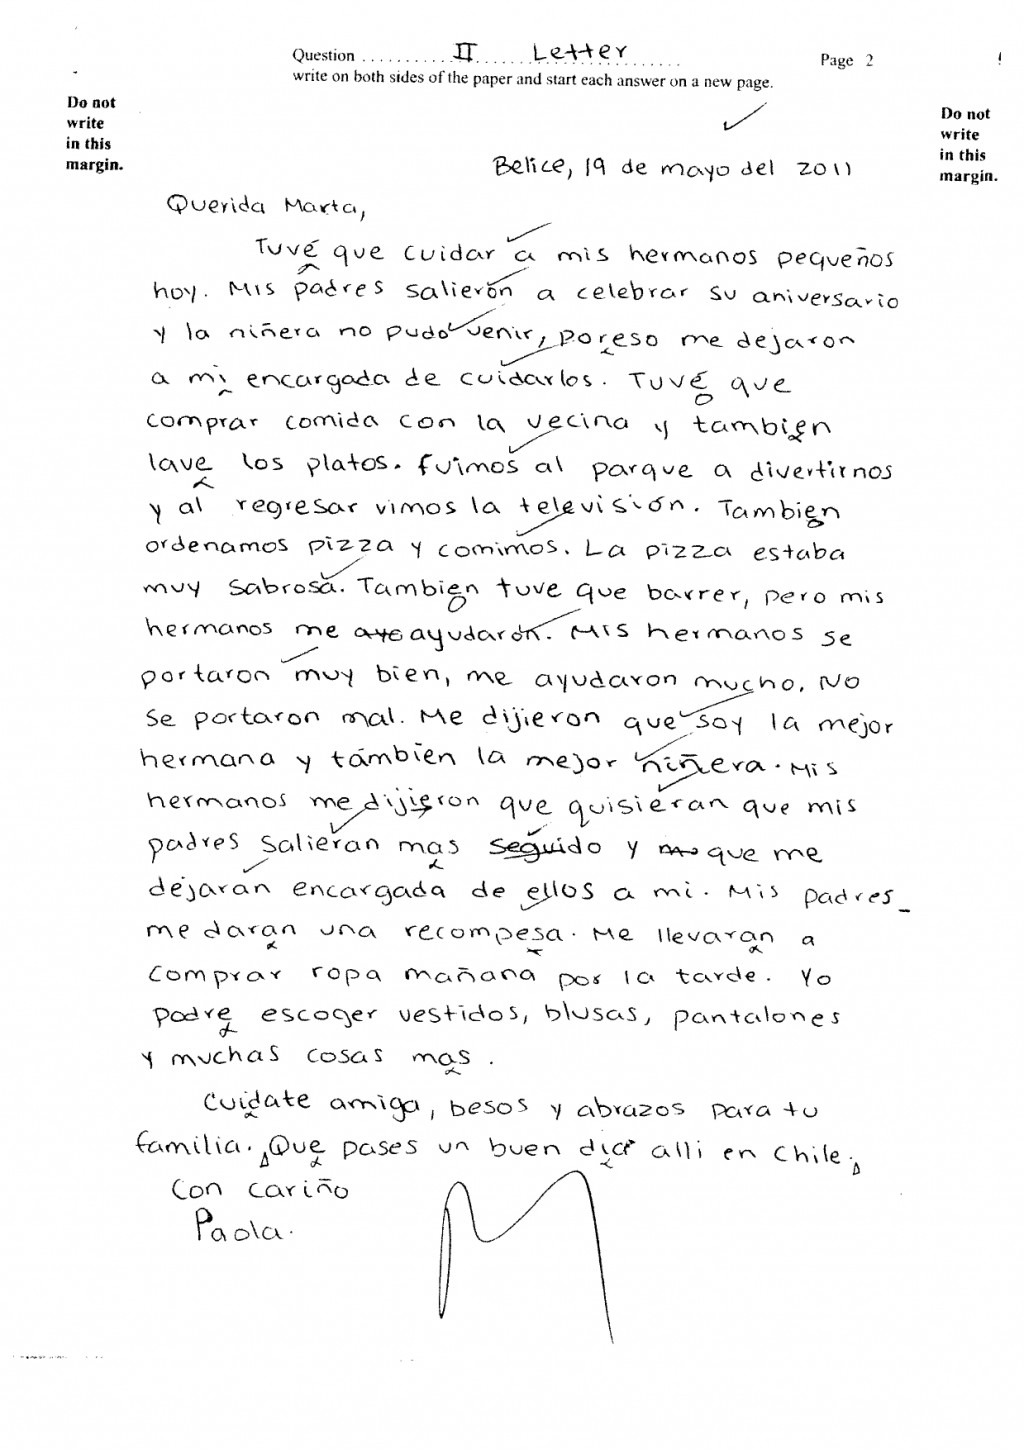 018 Essay Example What Is In Spanish Csec June2011 Paper2 Sectionii Letter Pg2 Ex  Imposing English From CalledLarge